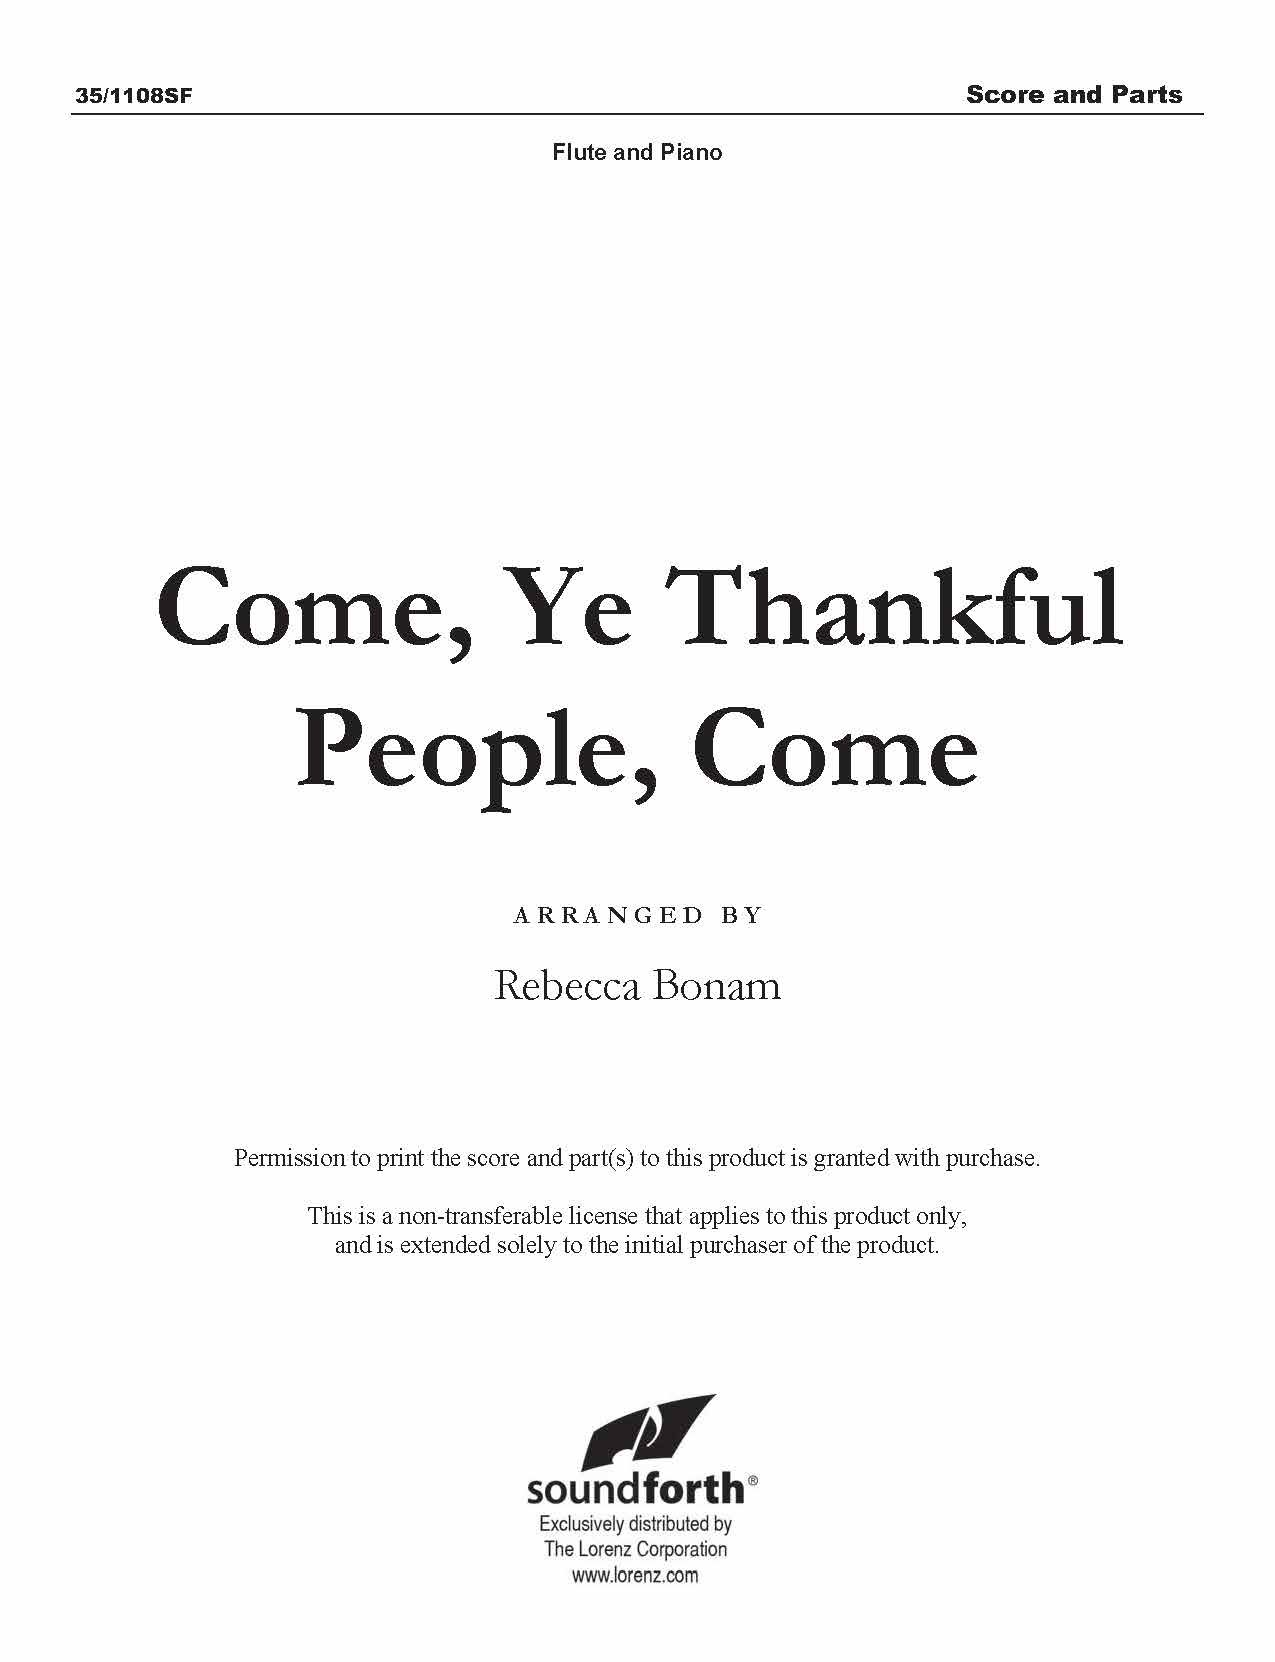 Come, Ye Thankful People, Come (Digital Delivery)